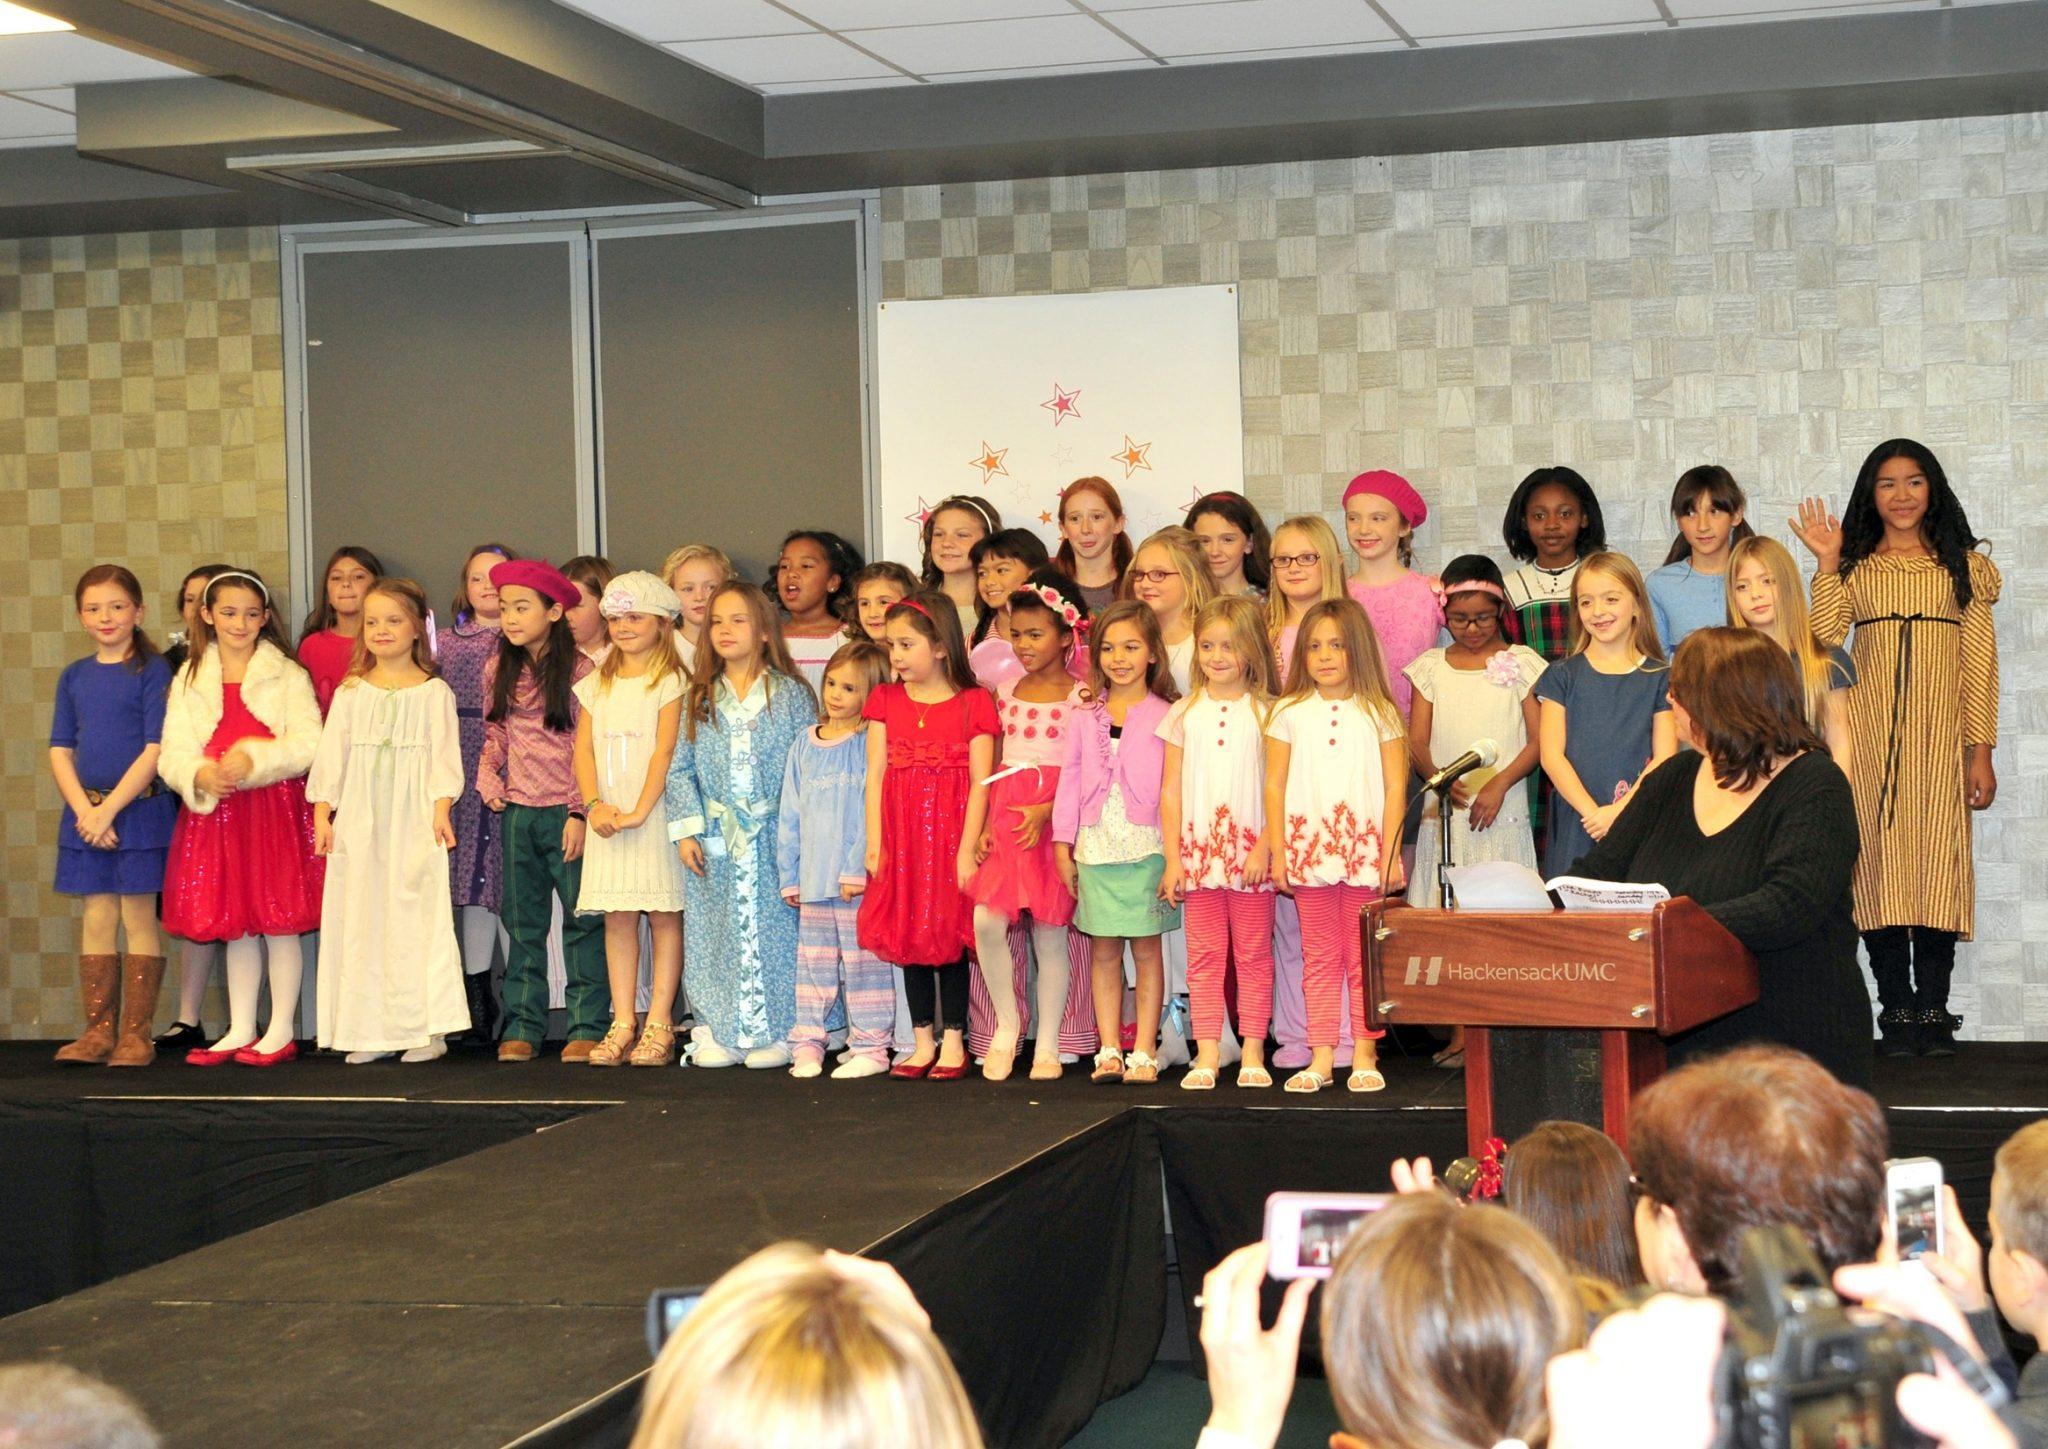 Felicity: An American Girl (American Girls Collection) American girl fashion show williamsburg